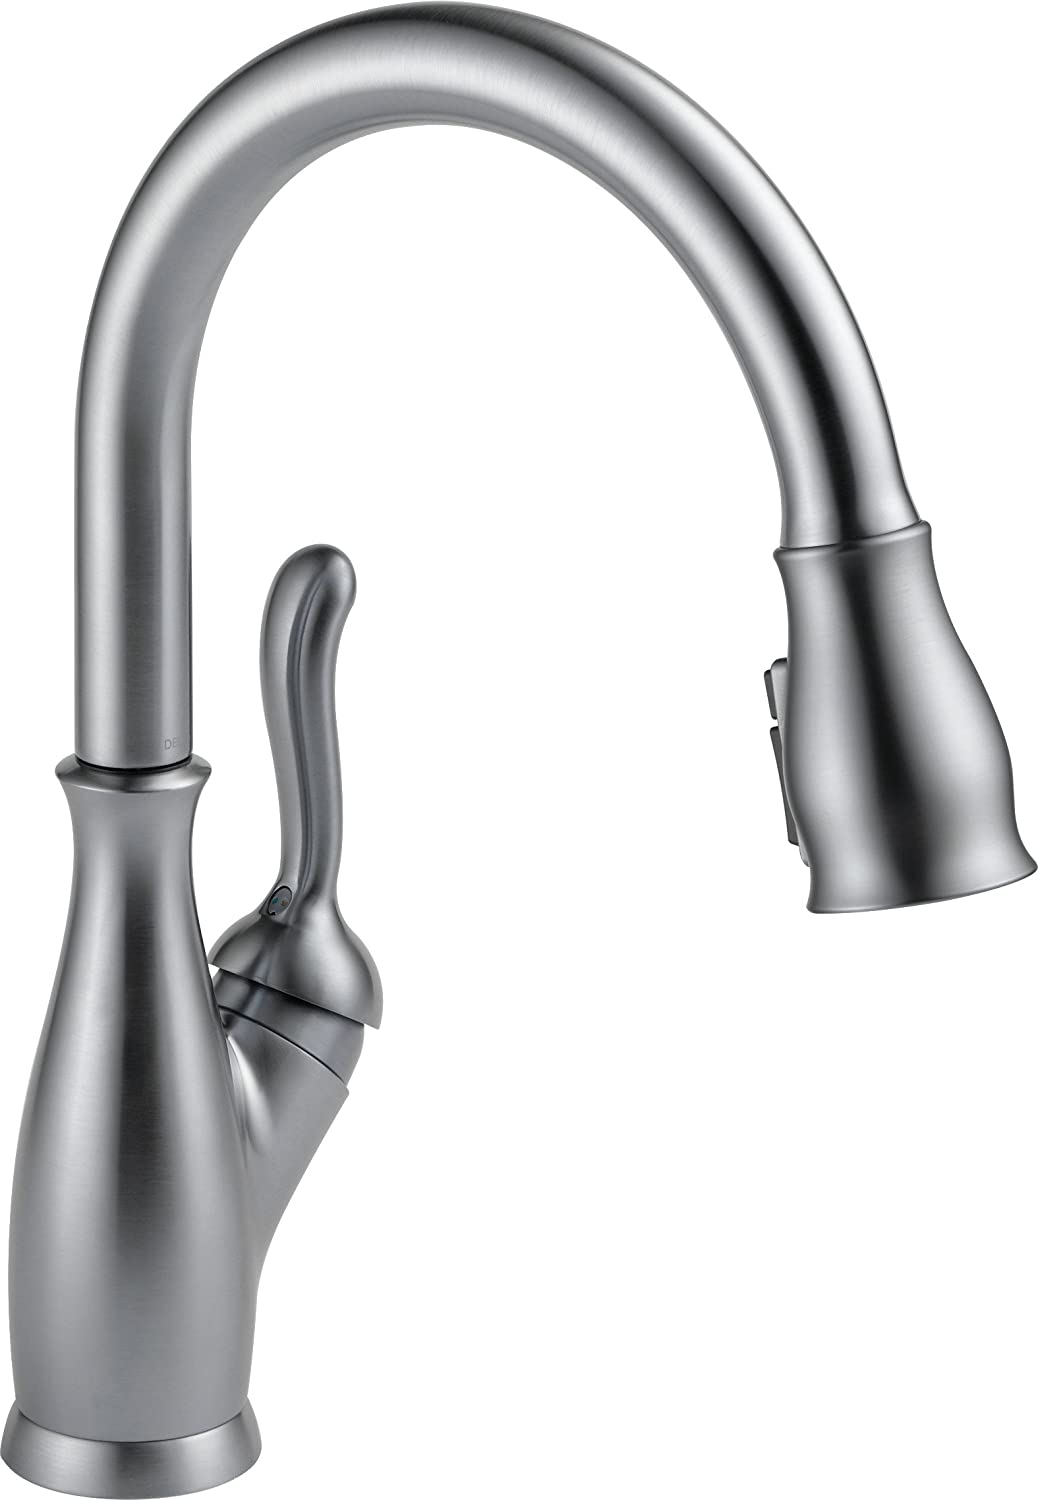 1. Delta Faucet 9178-AR-DST Leland Single-Handed Kitchen Sink Faucet